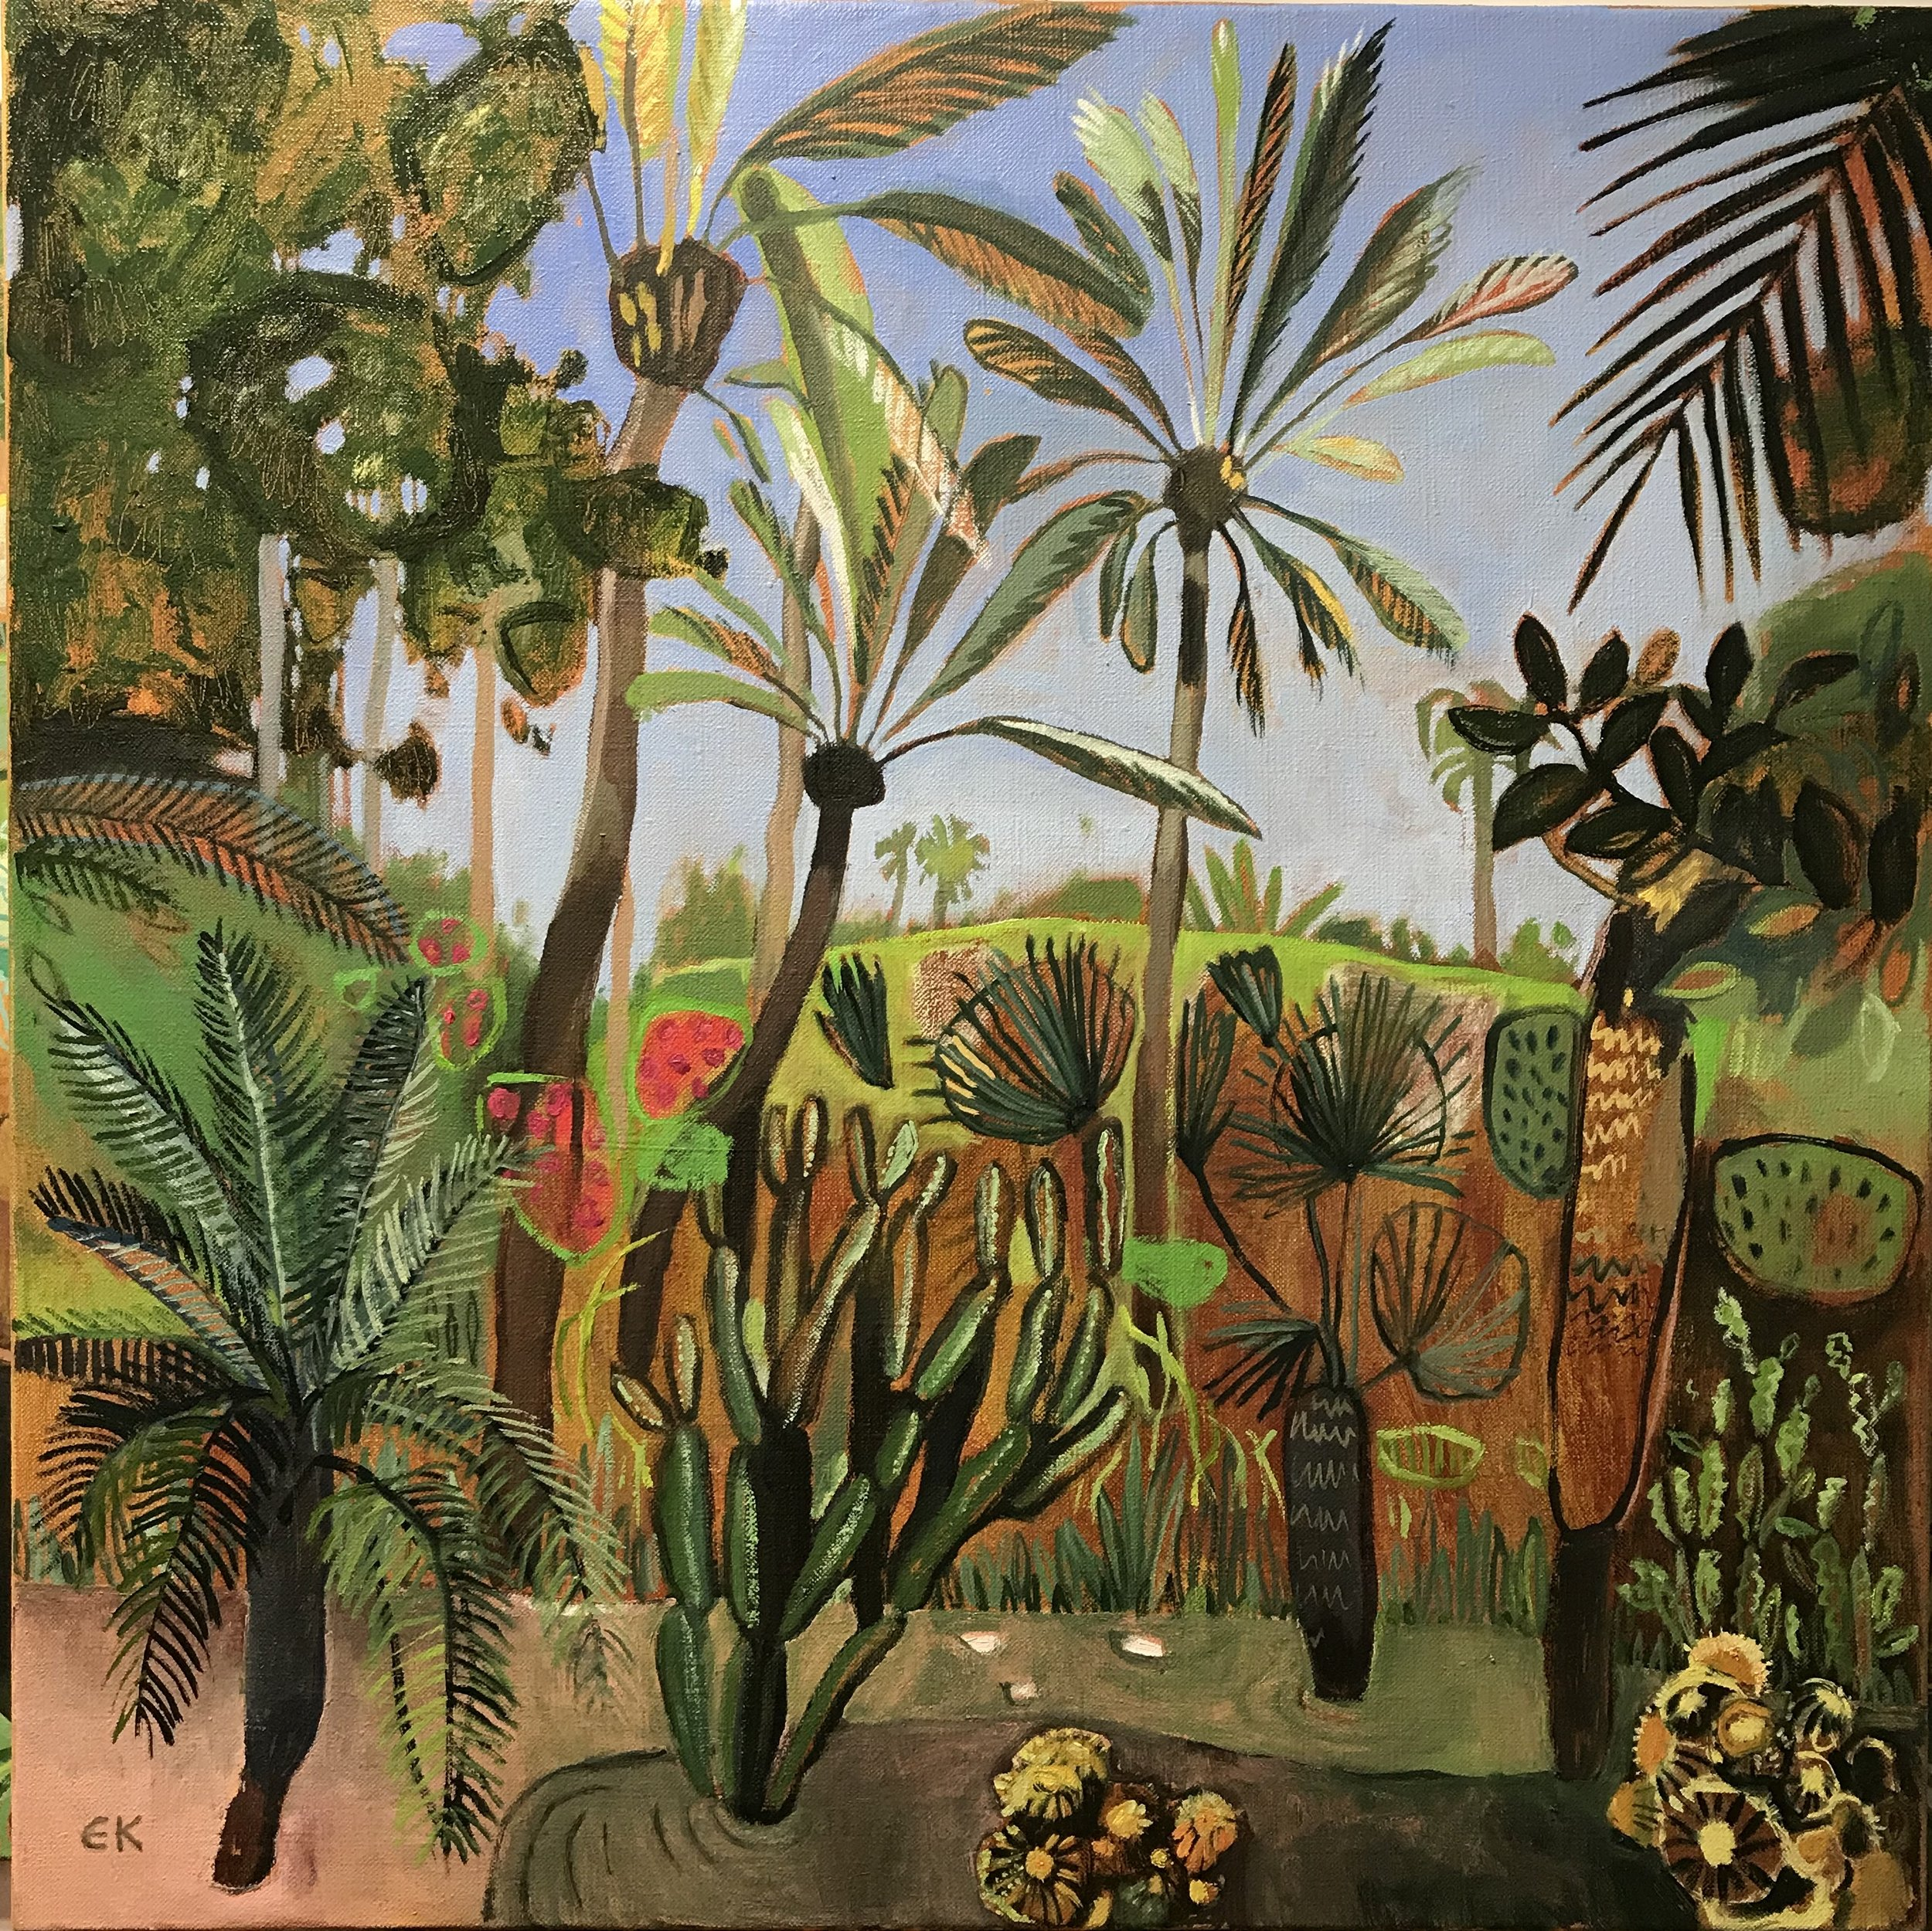 Marlorelle Garden with Cactus and Palms